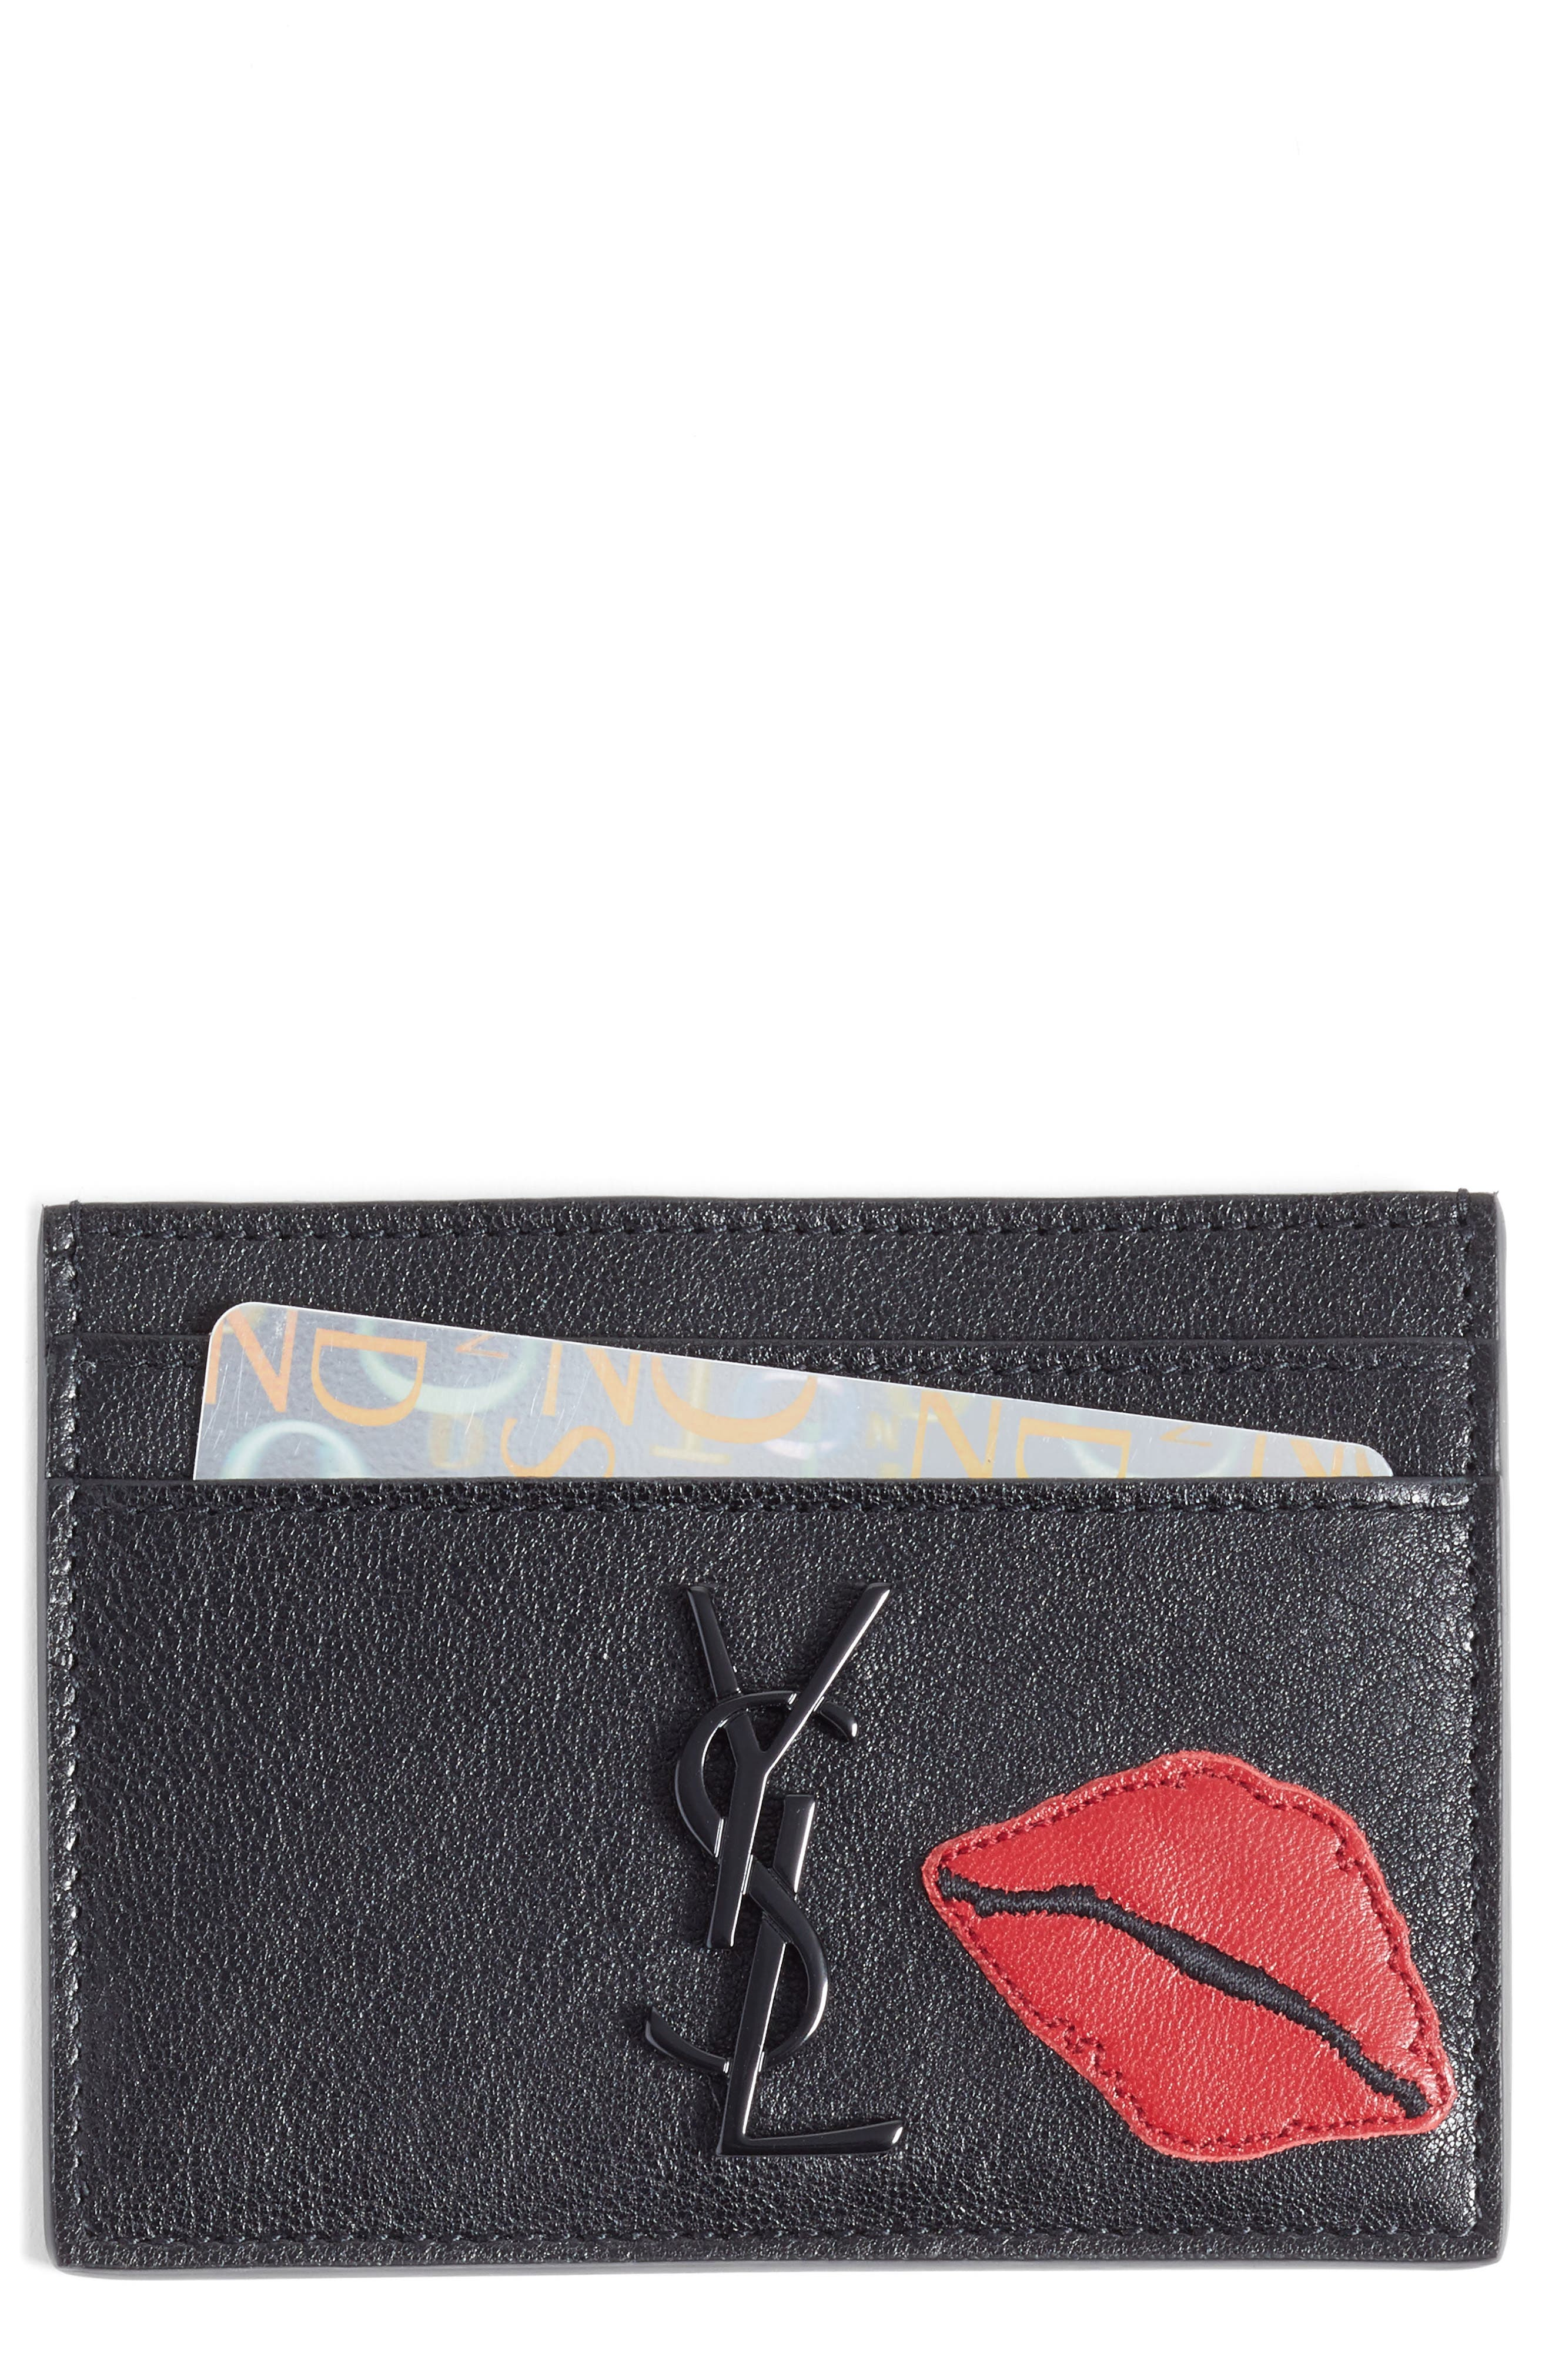 Saint Laurent Appliqué Lips Leather Card Holder